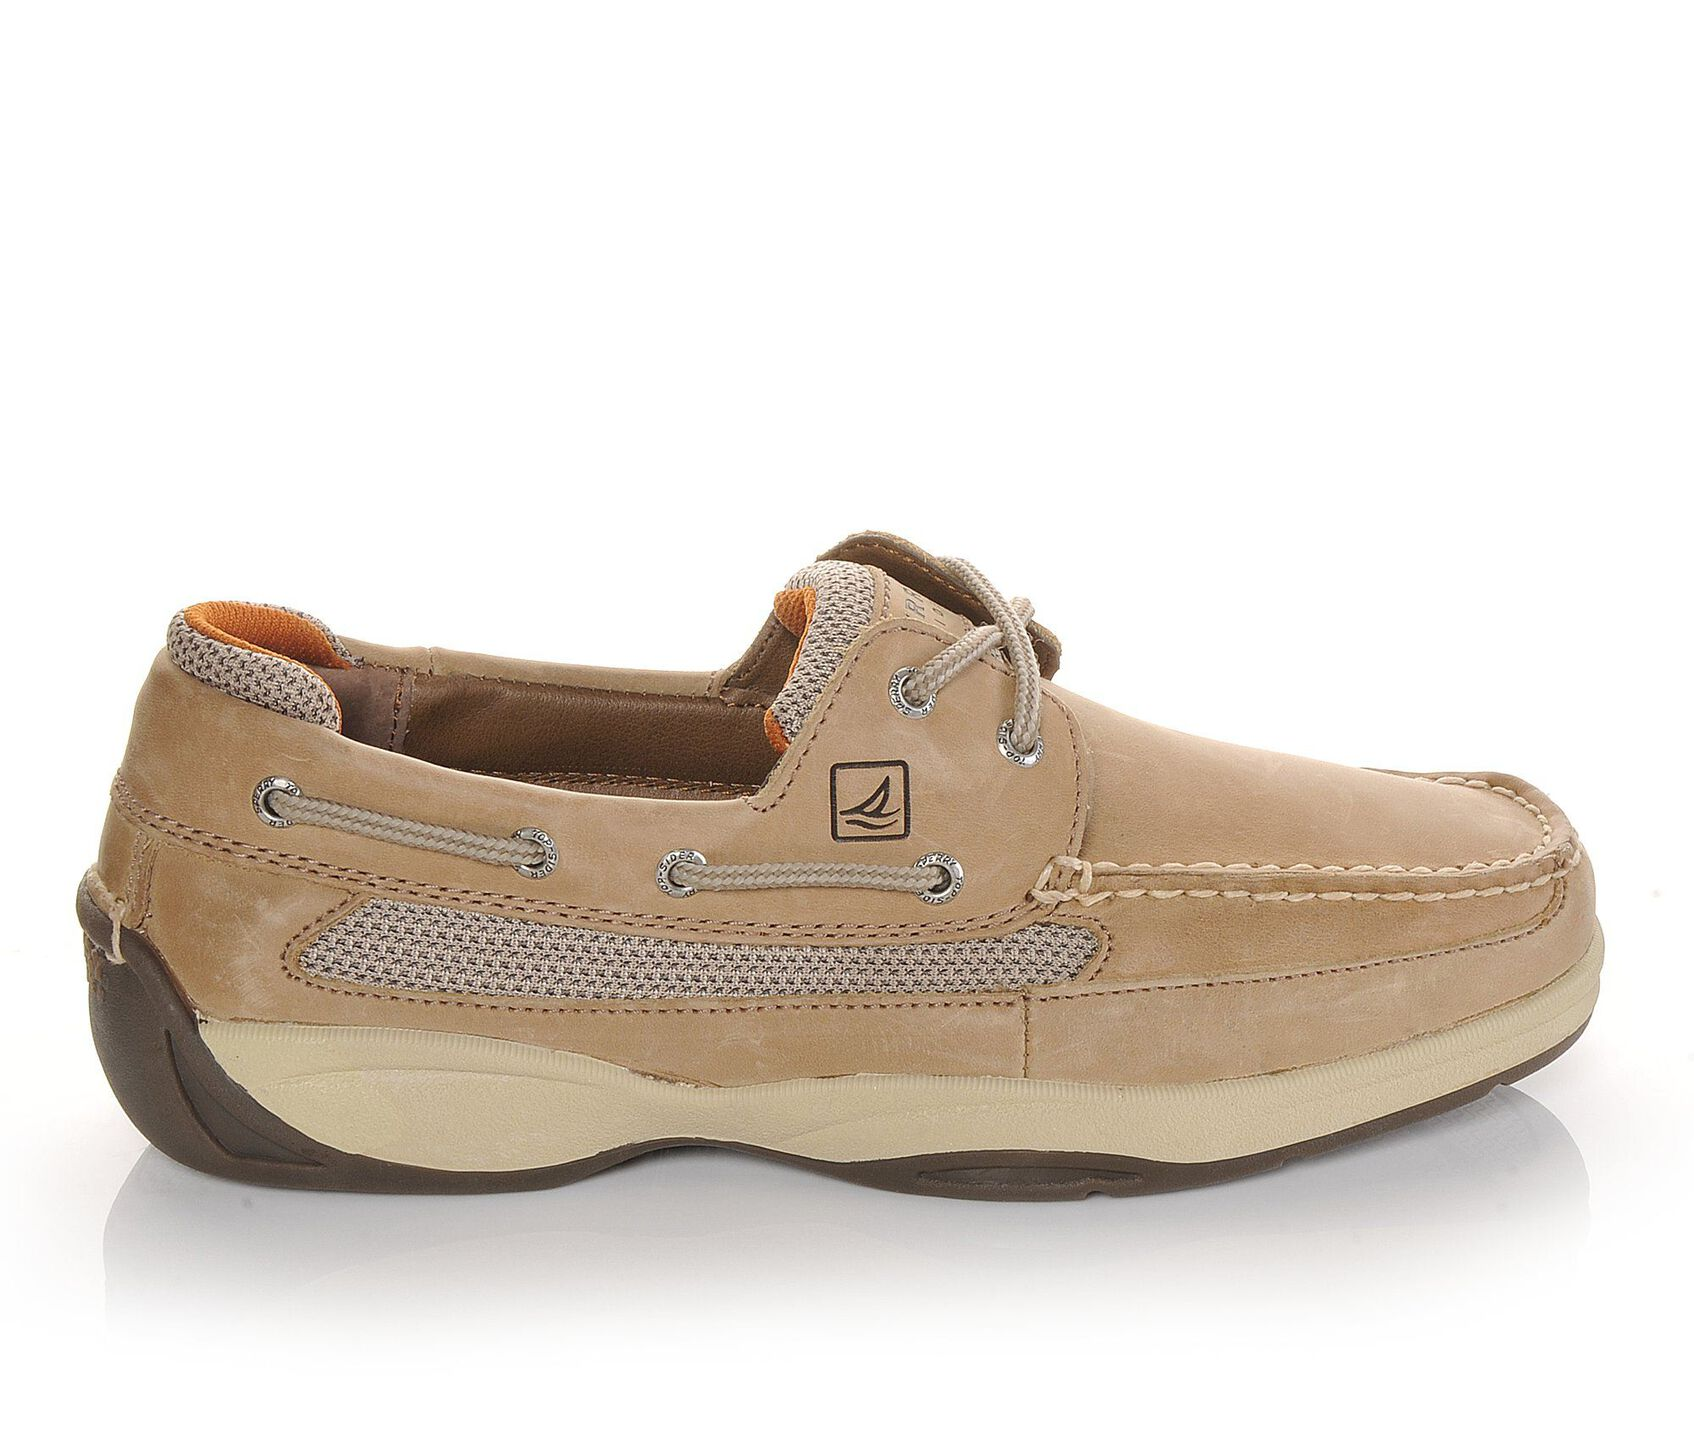 f2a447d05fa0 Men s Sperry Lanyard Boat Shoes